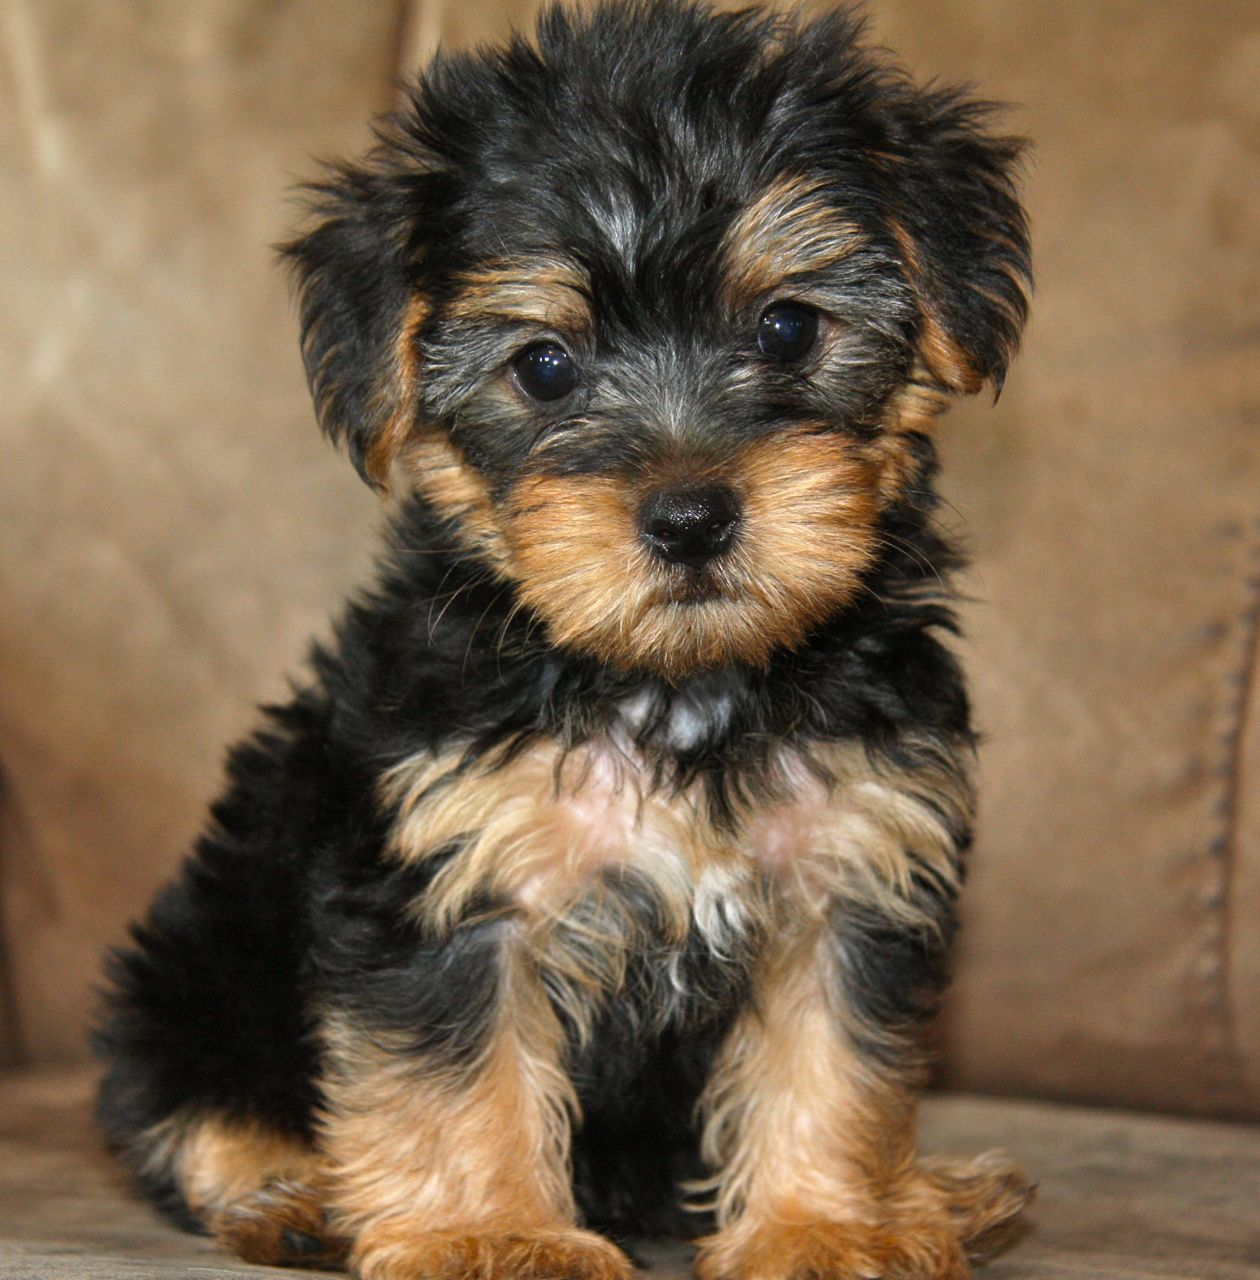 A Yorkipoo (aka yorkapoo or yoodle) is a mutt or mixed